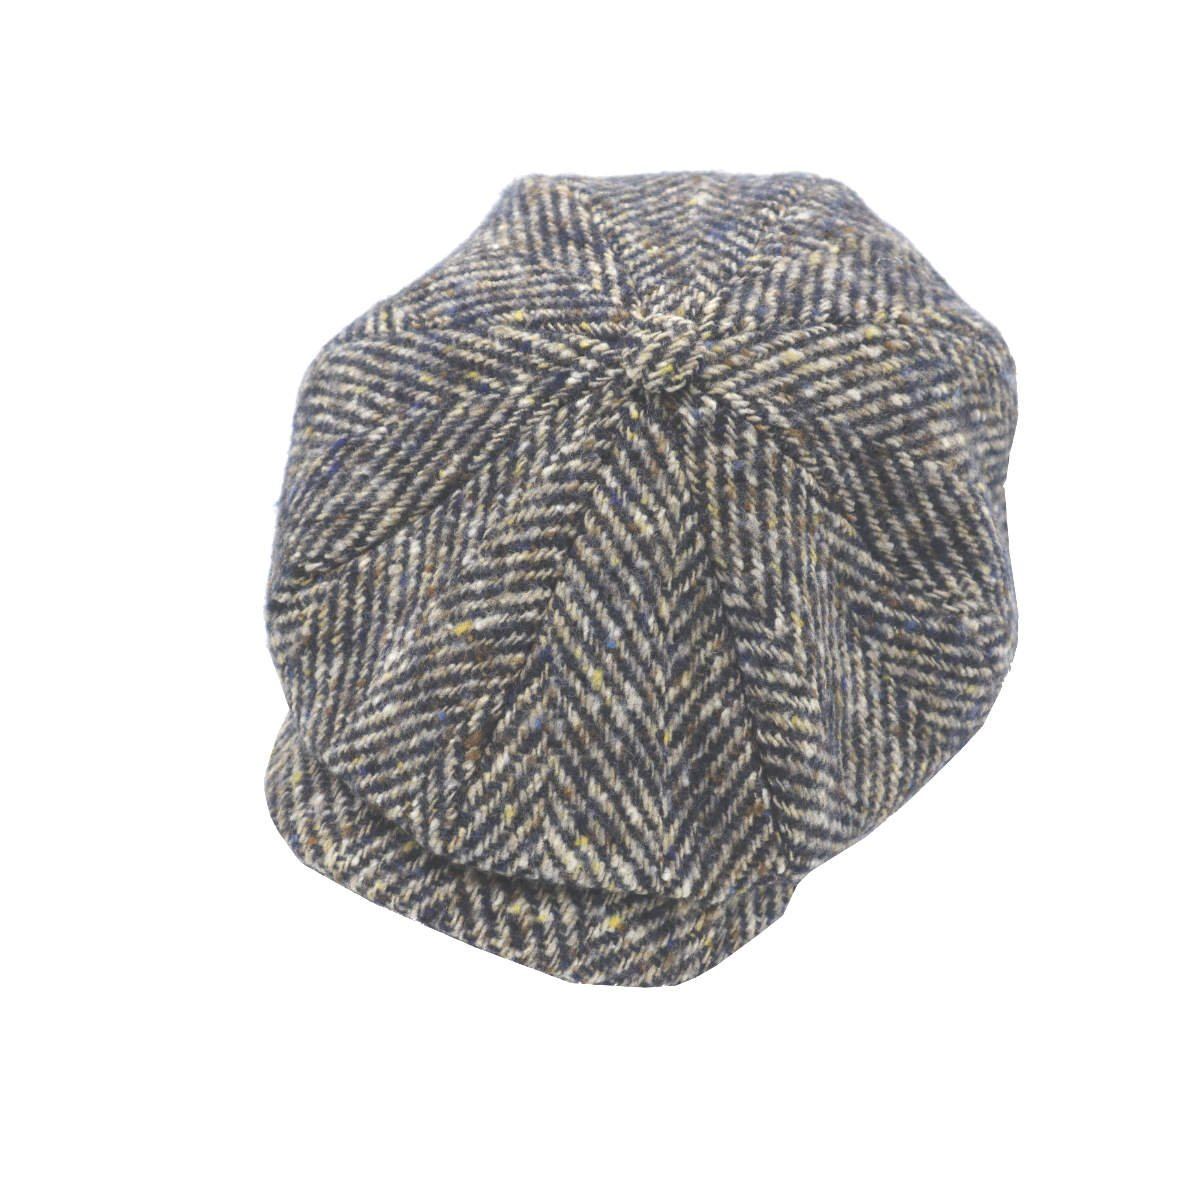 Donegal newspaperboy cap stetson side top shot